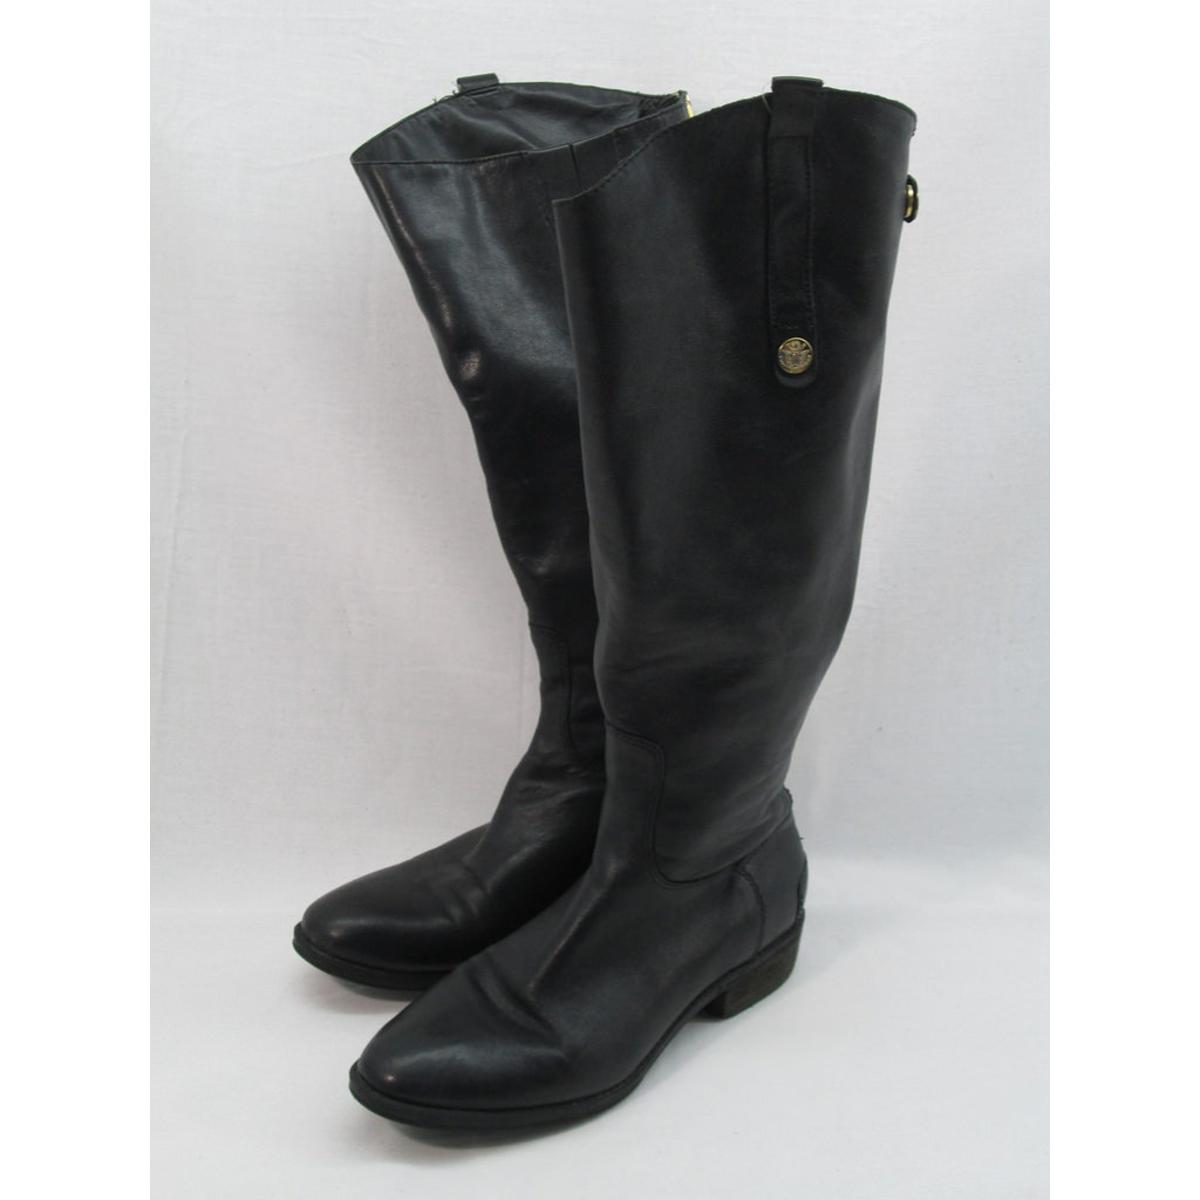 9ceca6c9c Details about Sam Edelman Penny Black Riding Women s Boot 7.5M